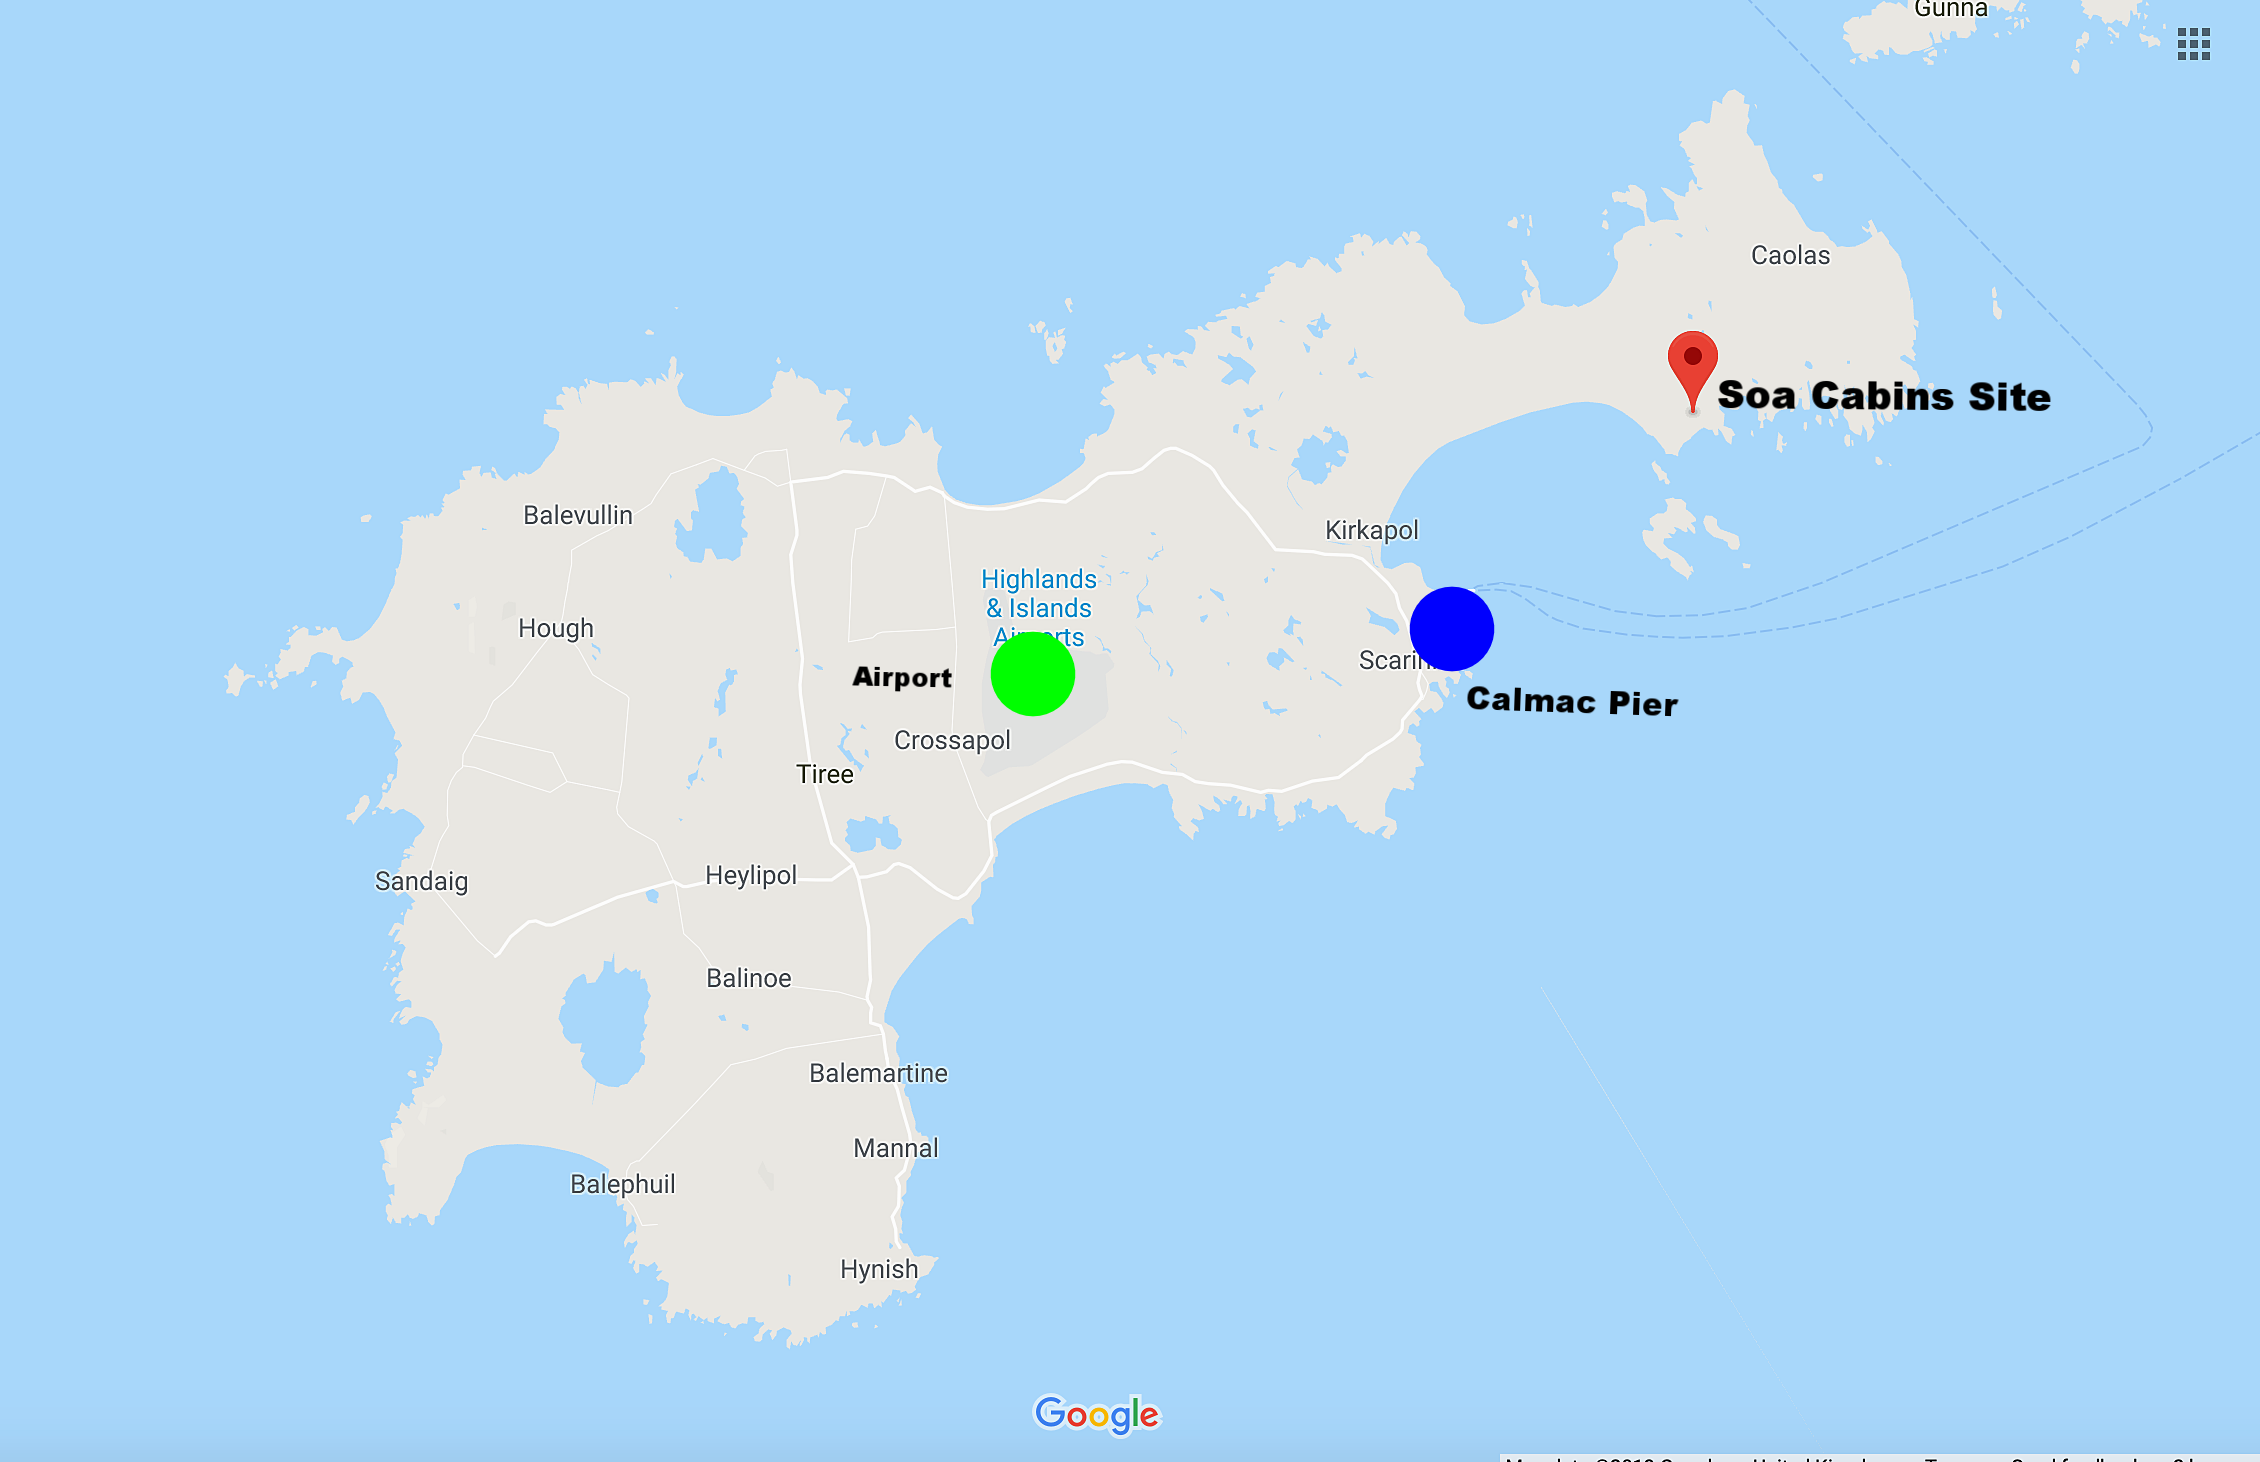 Map of Tiree showing Soa cabin site (Red Marker), Tiree Airport (Green) and Calmac Pier (Blue).